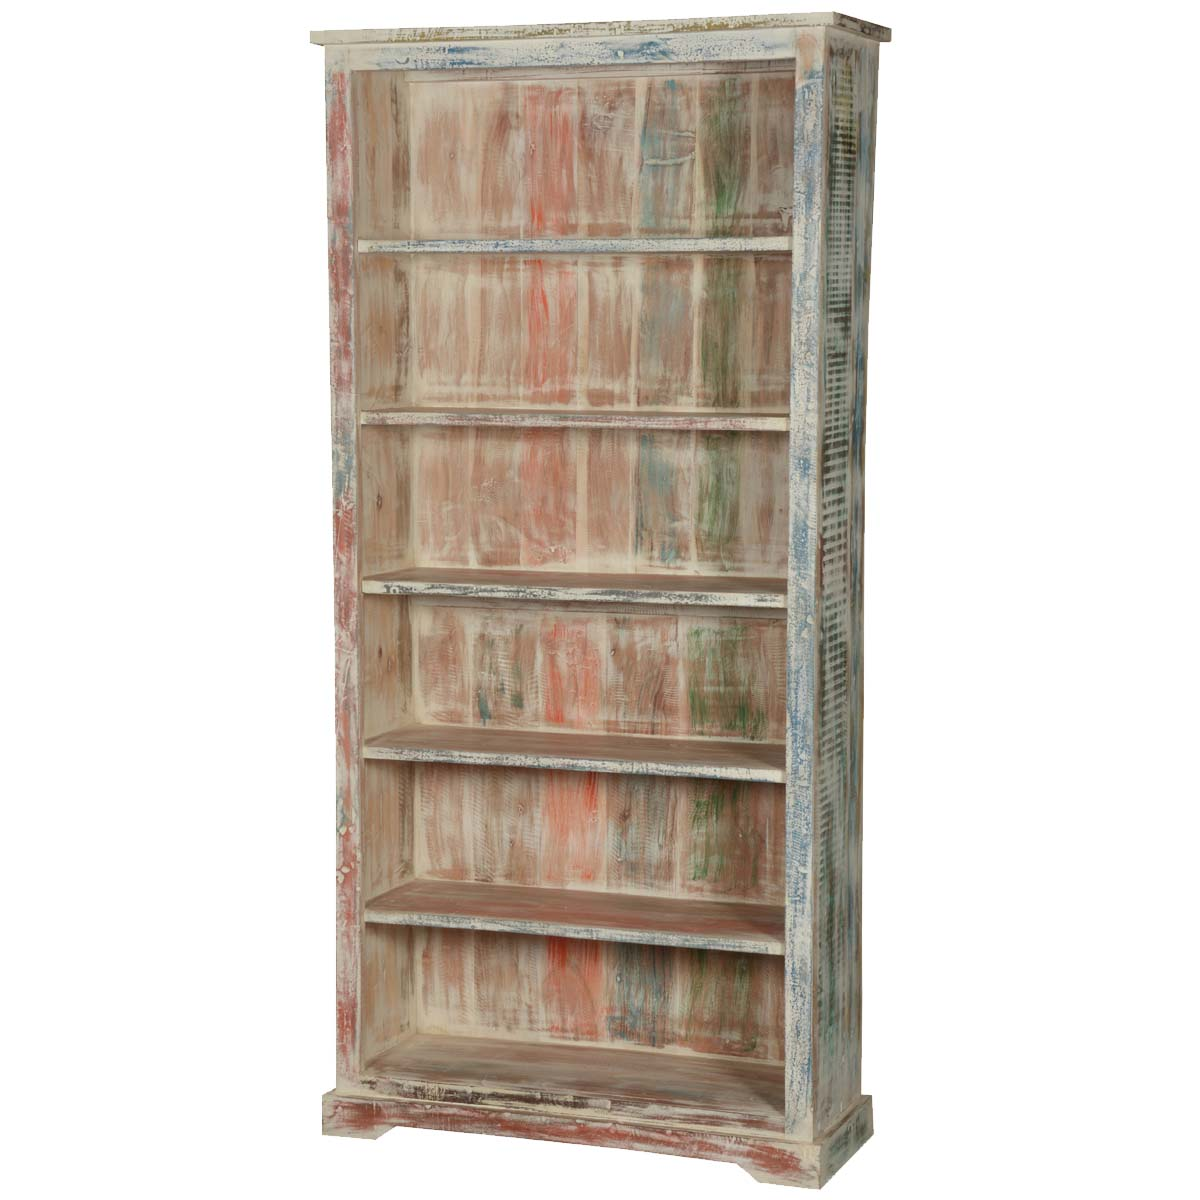 Chickasaw 6 Open Shelf Rustic Reclaimed Wood Standard Bookcase